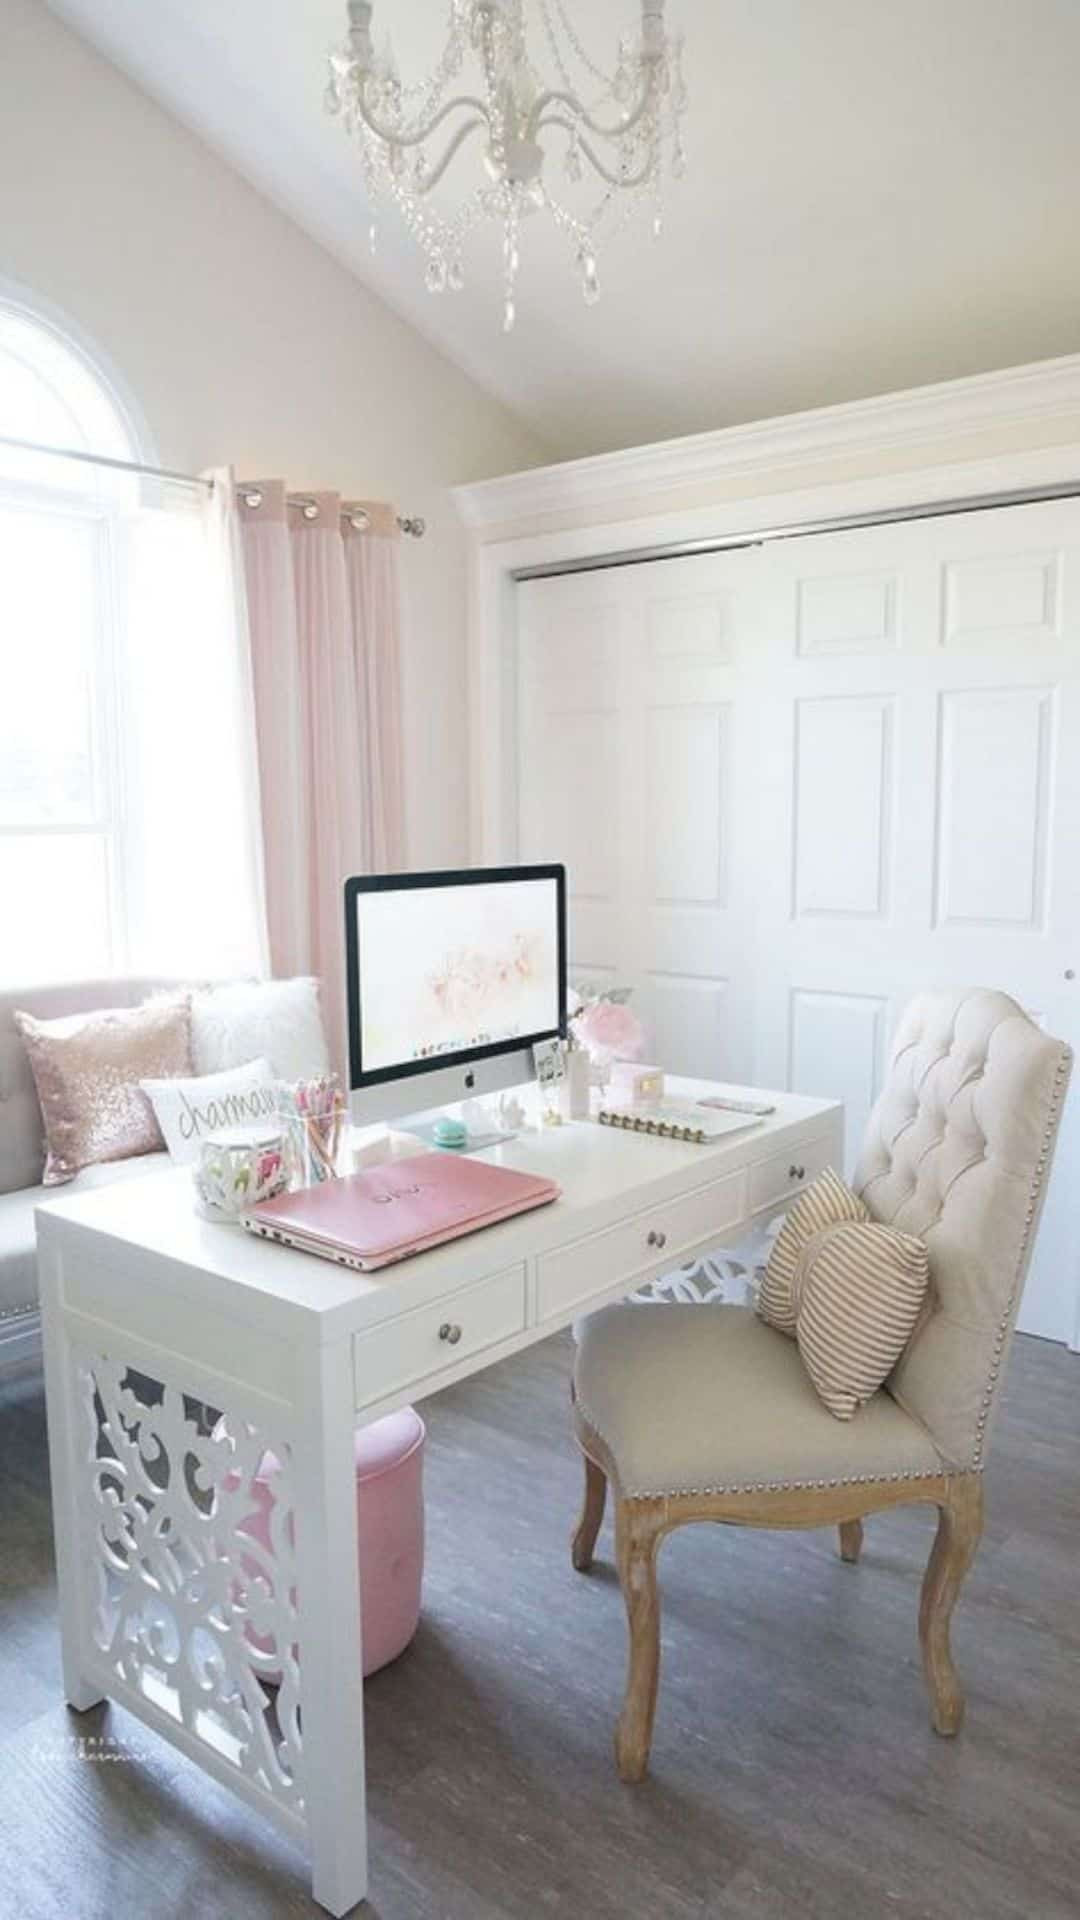 Adorable Diy Home Office Decor 18 Cute Diy Girly Home Decor Ideas